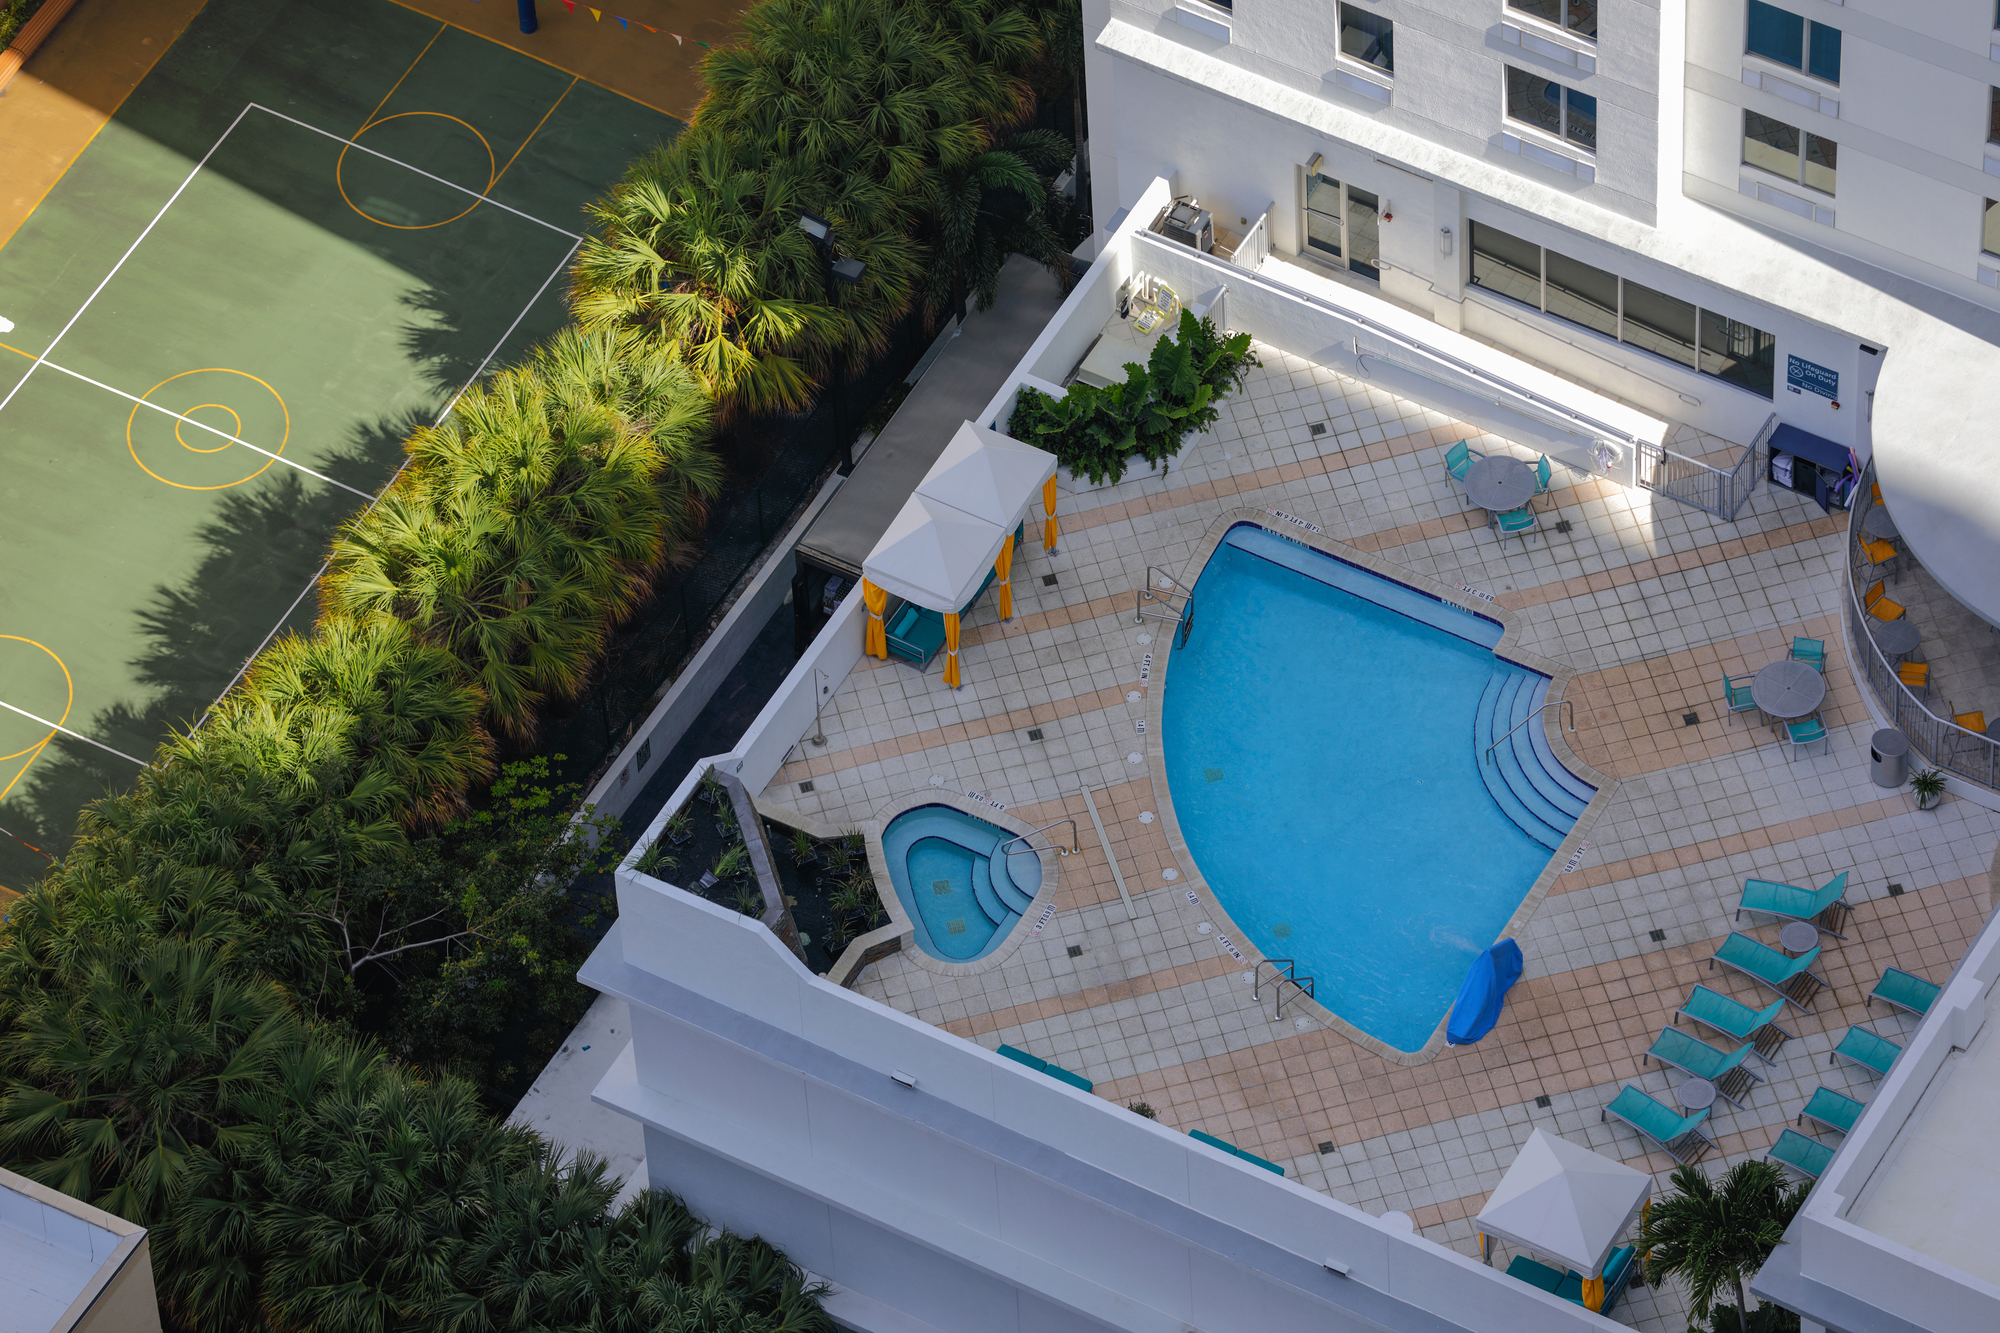 Top Apartment Amenities to Attract Millennials Include Roof Top Pools and Tennis Courts